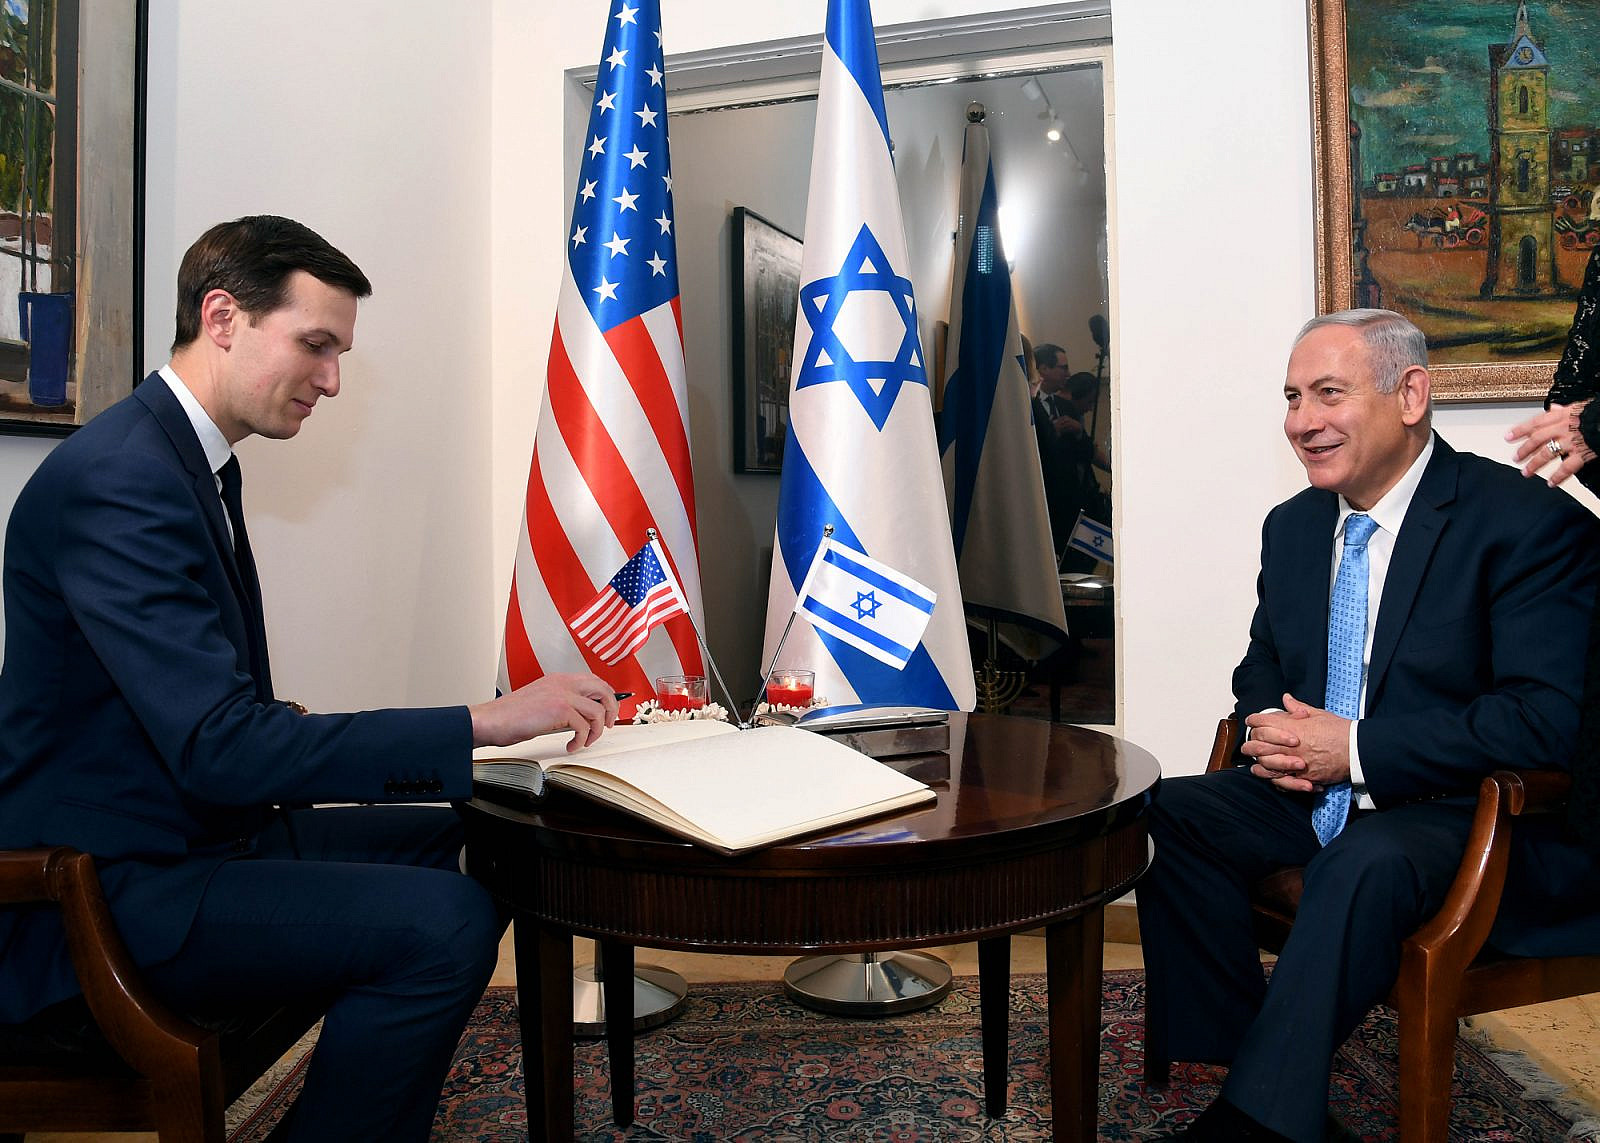 U.S. special advisor Jared Kushner and Israeli Prime Minister Benjamin Netanyahu at the dedication ceremony of the U.S. embassy in Jerusalem. (Wikimedia)